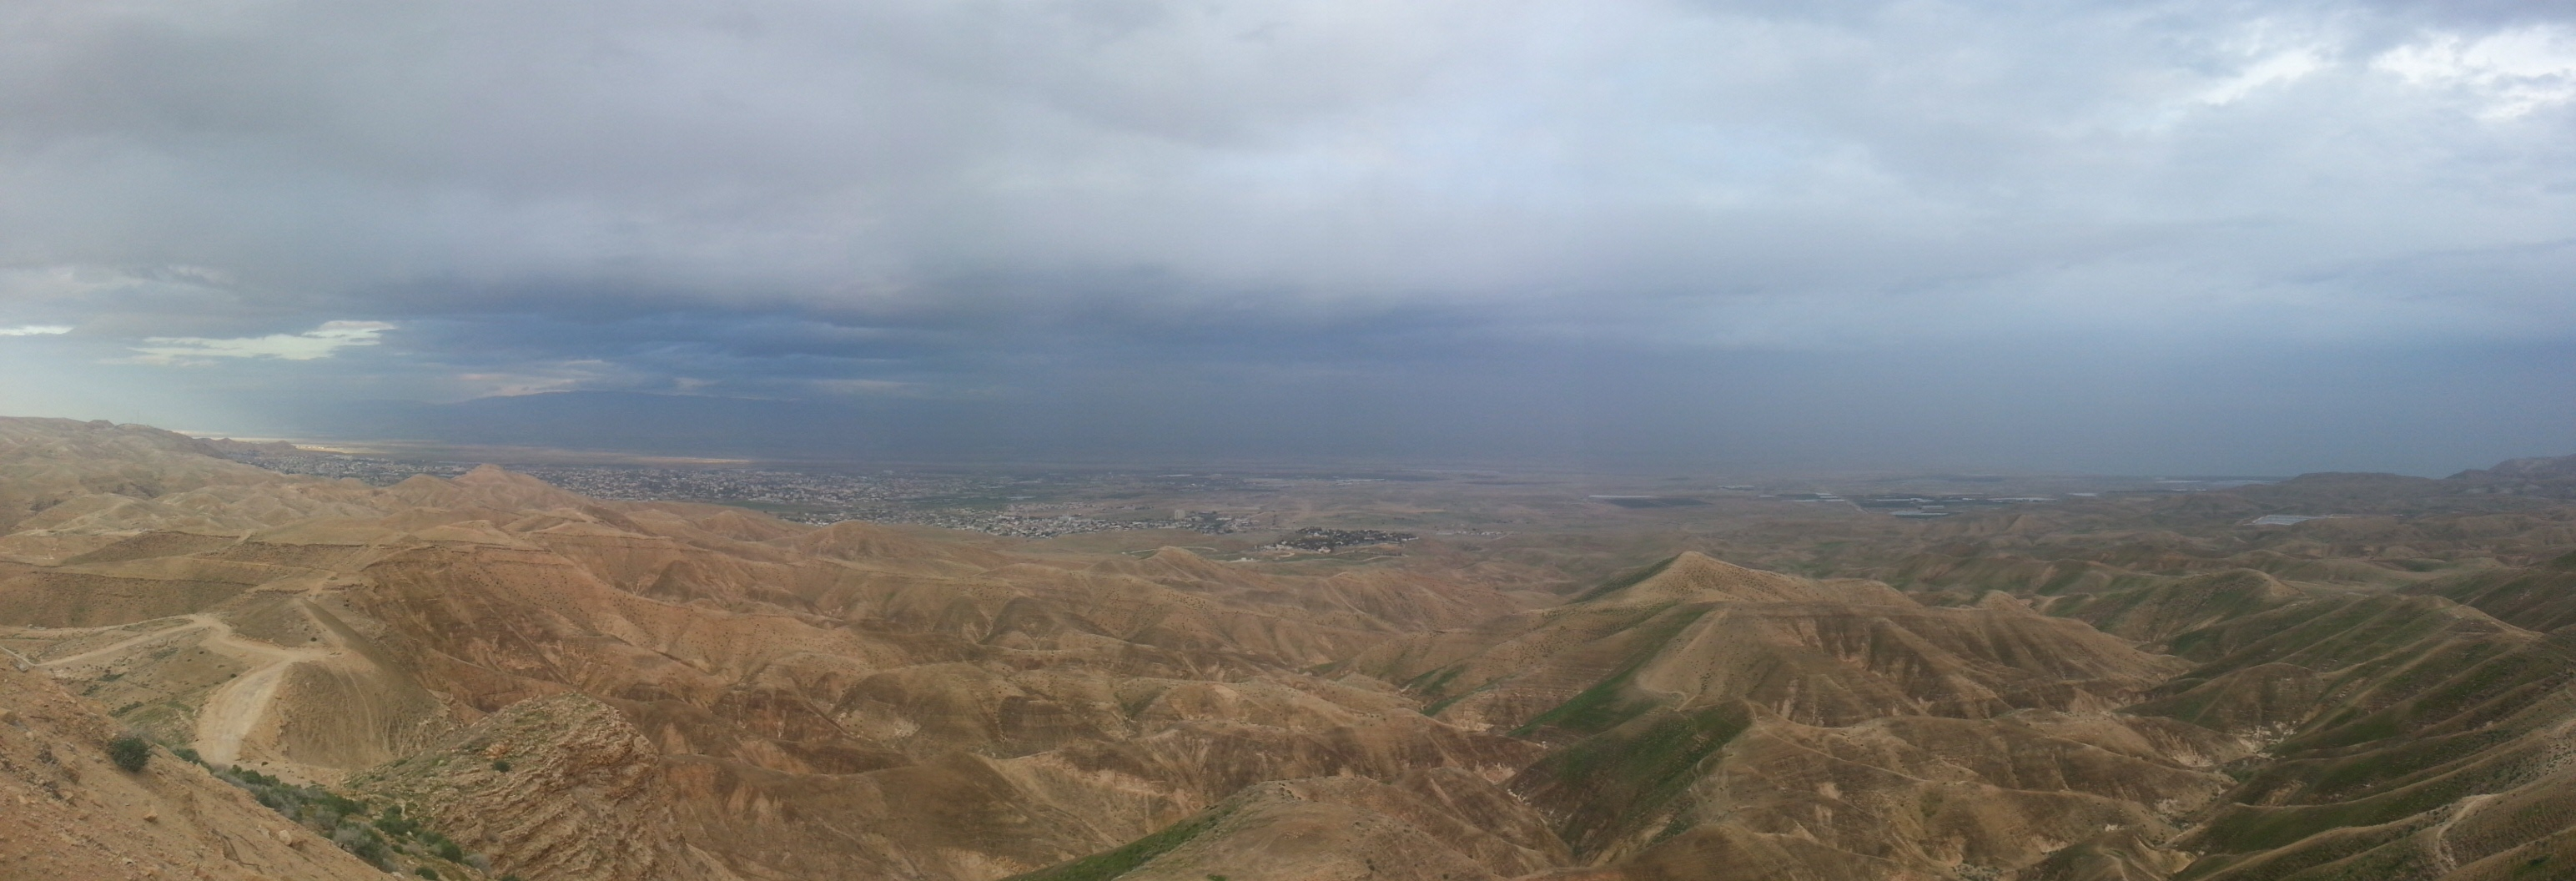 View over Jericho and its surroundings from the Dead Sea Balcony